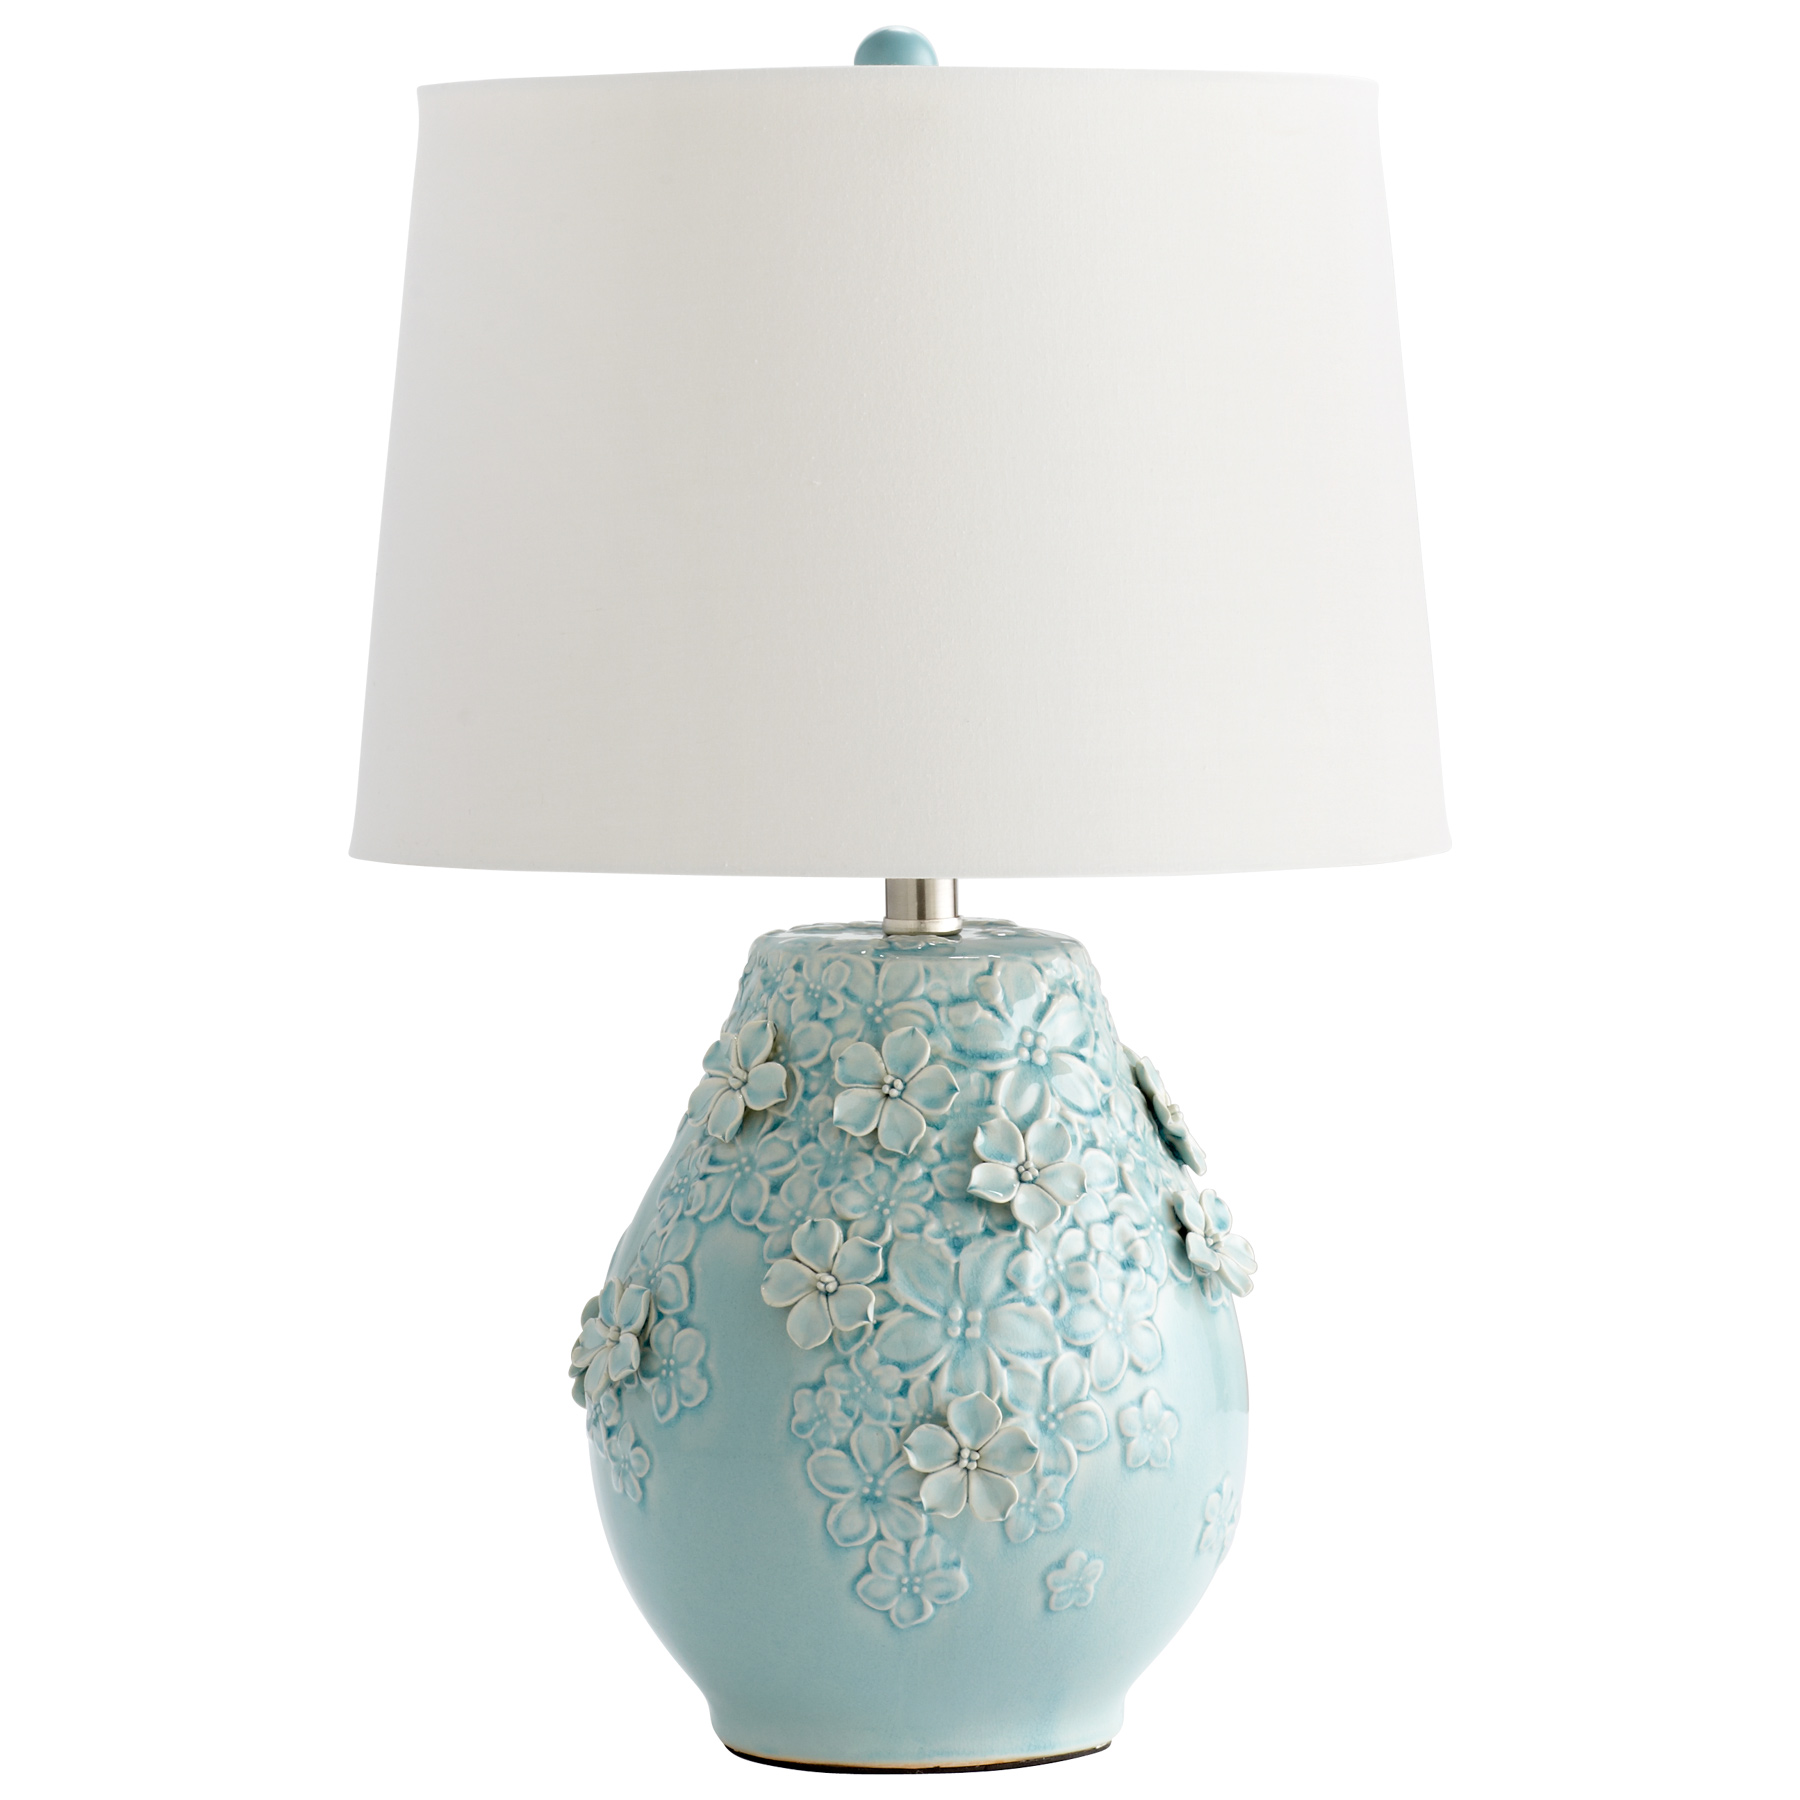 Nightstand Table Lamp Ceramic Flowers Light Blue Glaze 190808022097